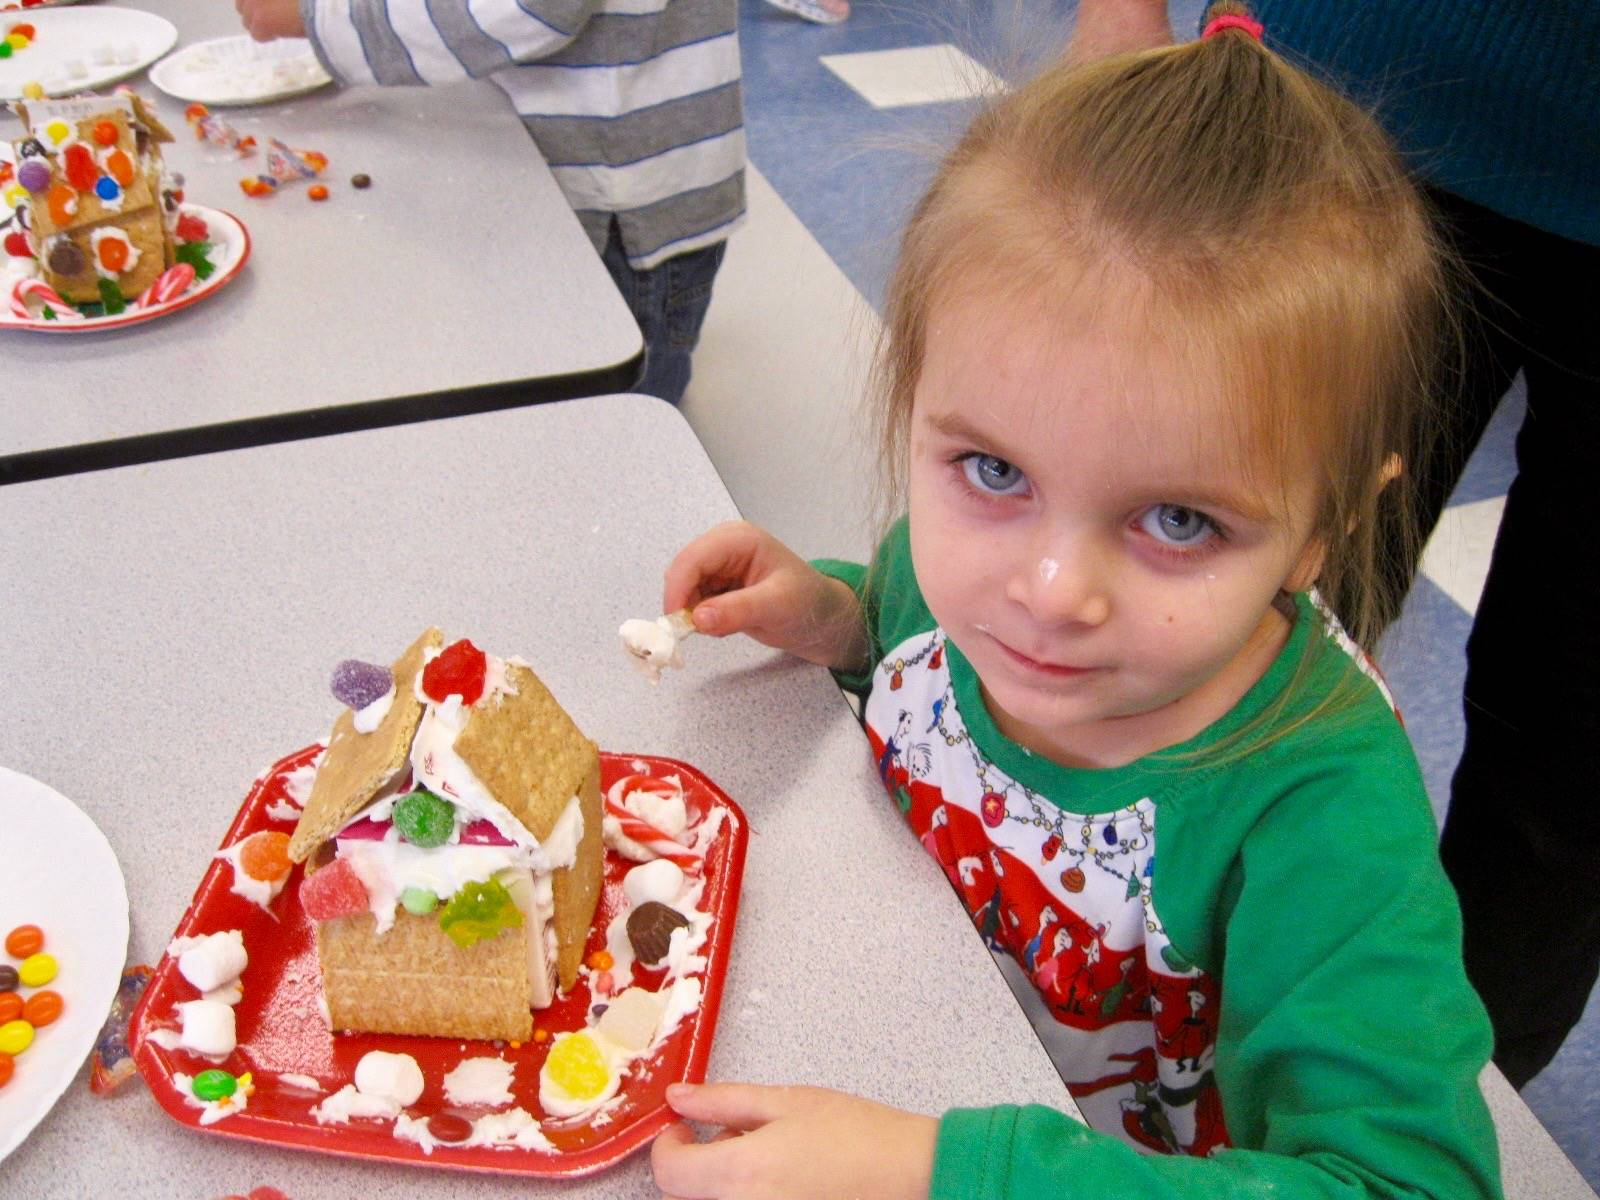 A student is proud of her gingerbread house.